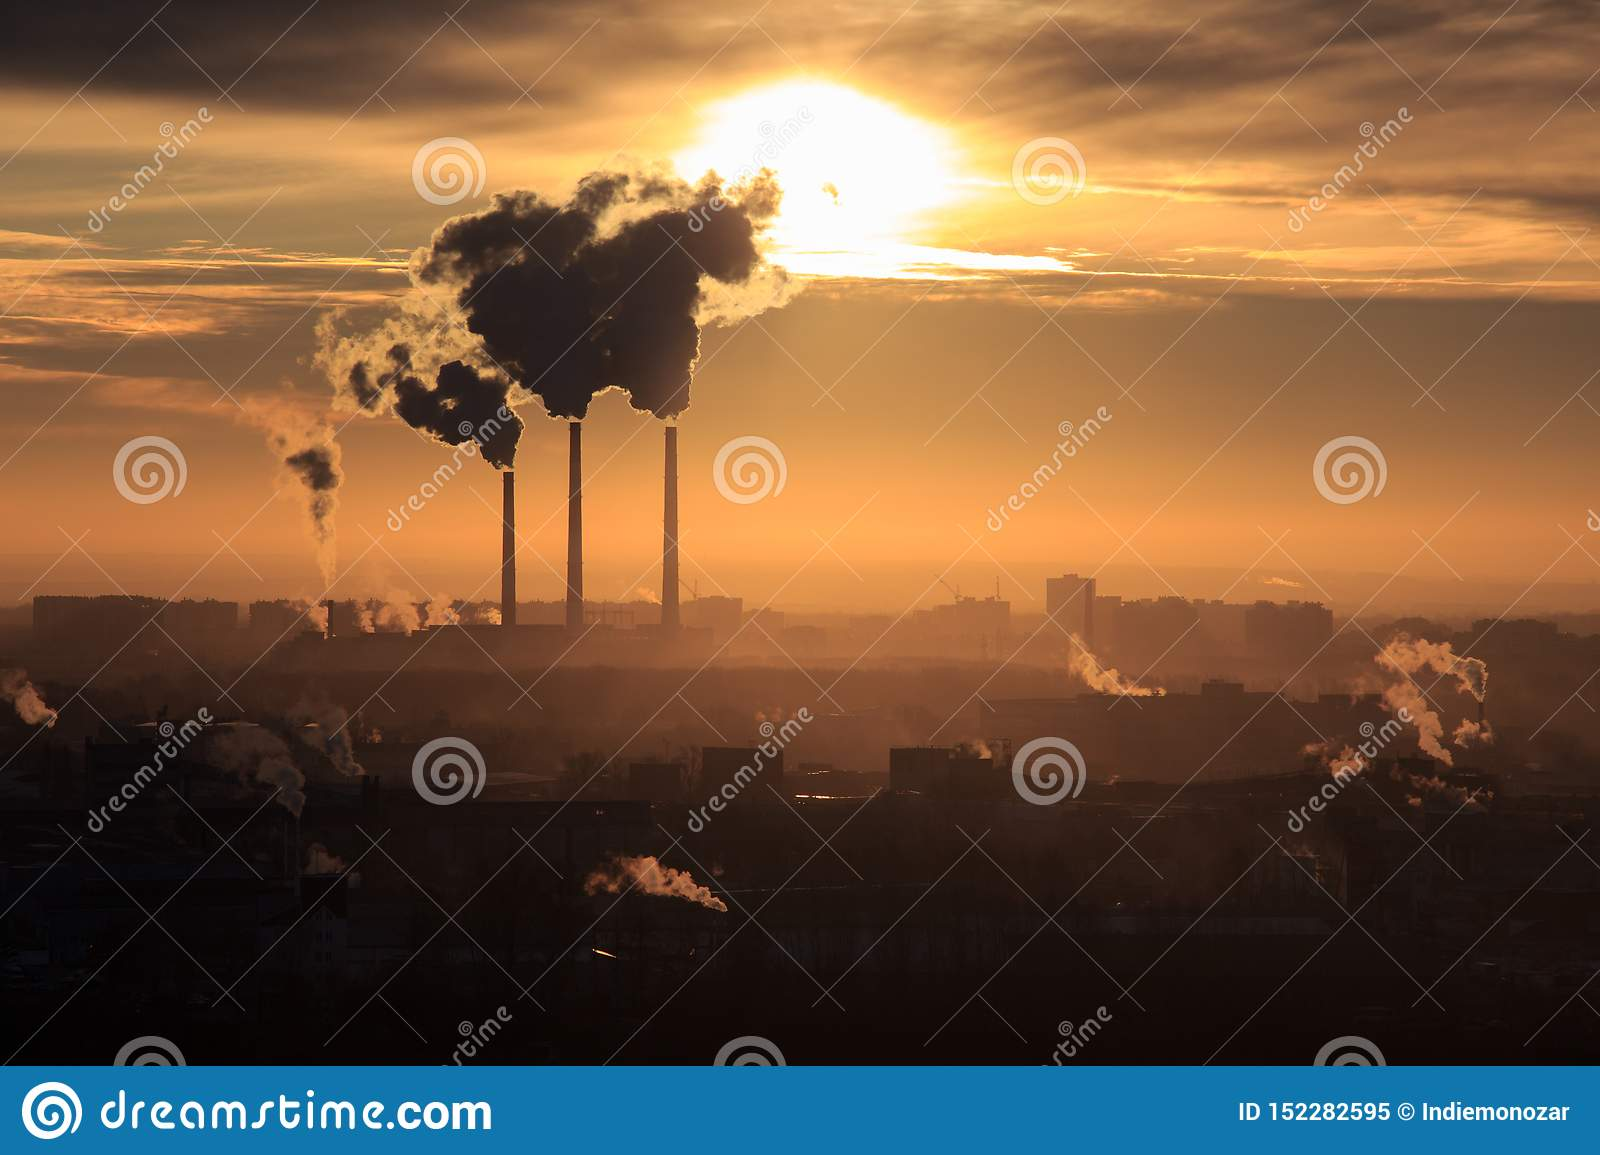 Dark smoke coming from the thermal power plant pipe. Factory smoke, polluting the atmosphere. Industrial zone in the city